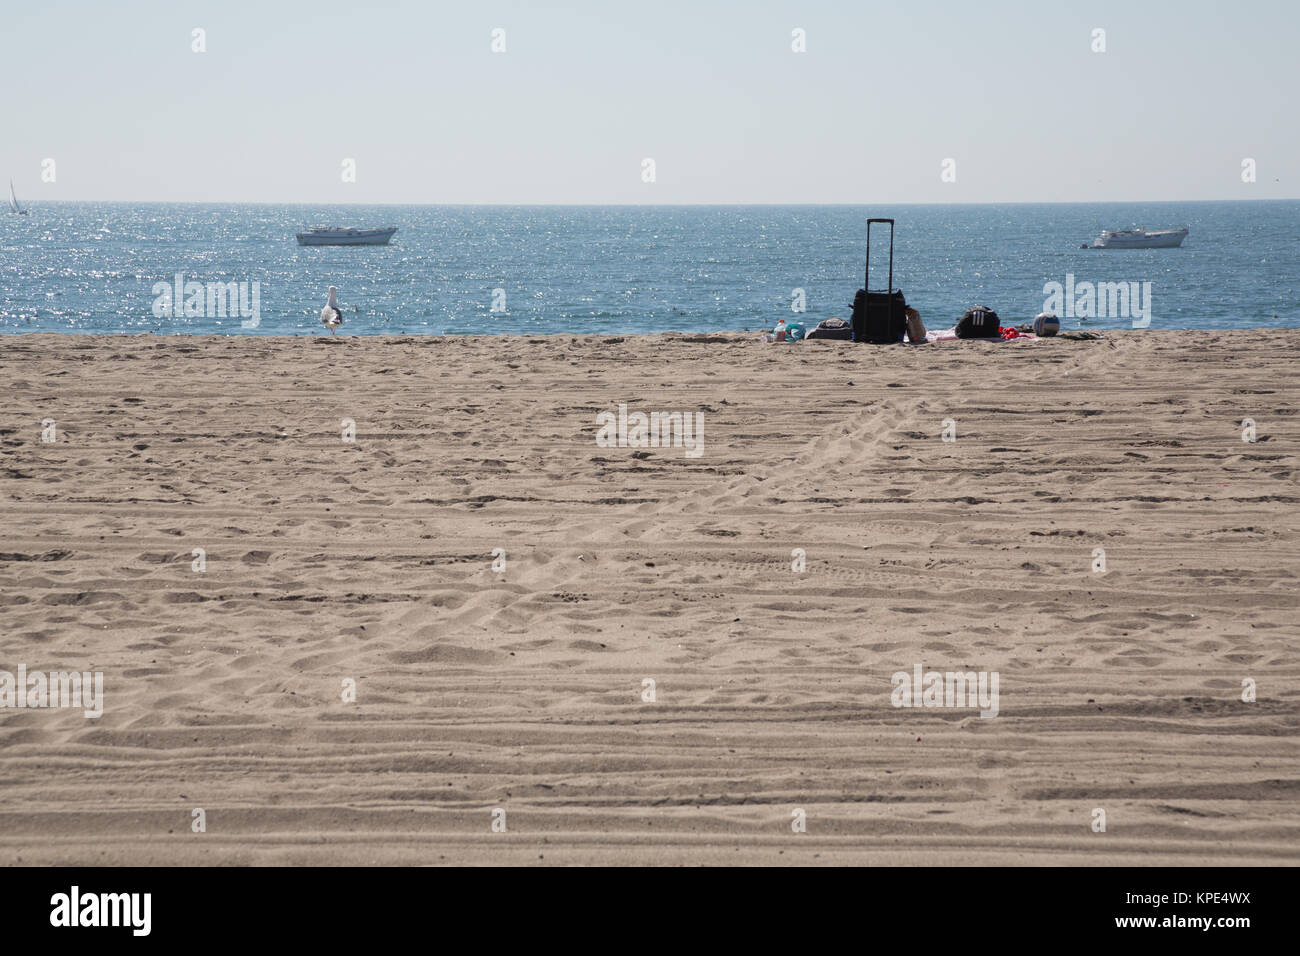 A rolling cooler,  a picnic blanket and volleyball  on the sand and boats in the water at Dockweiler State Beach, - Stock Image